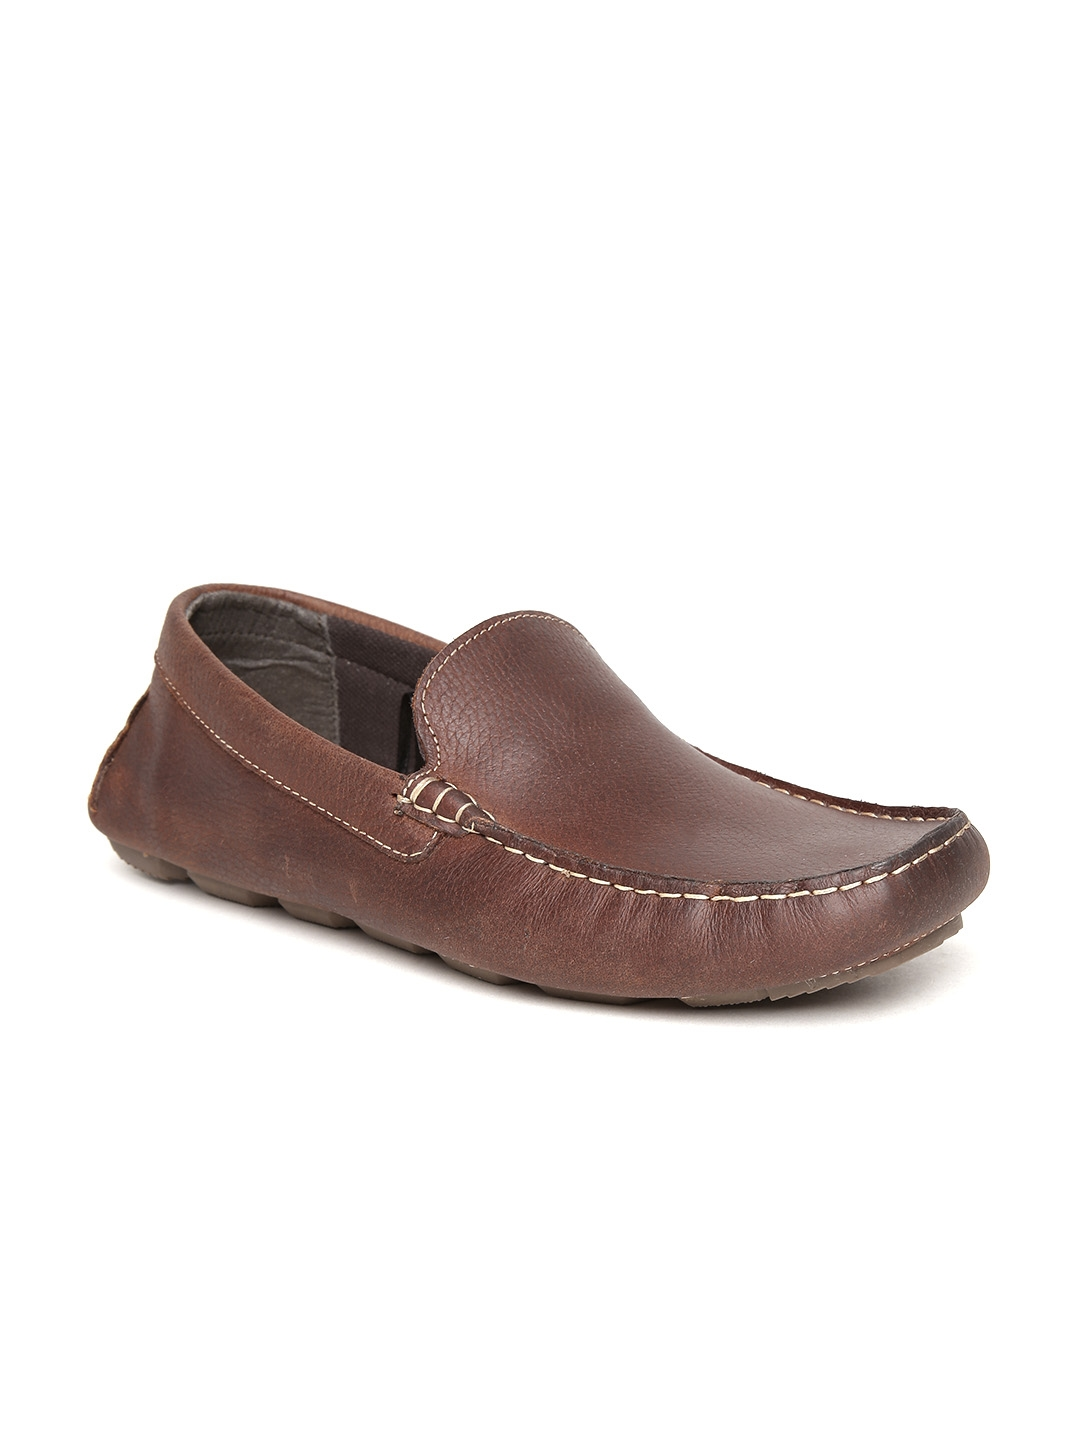 0d0a71f039 Buy Red Tape Men Brown Solid Leather Loafers - Casual Shoes for Men ...